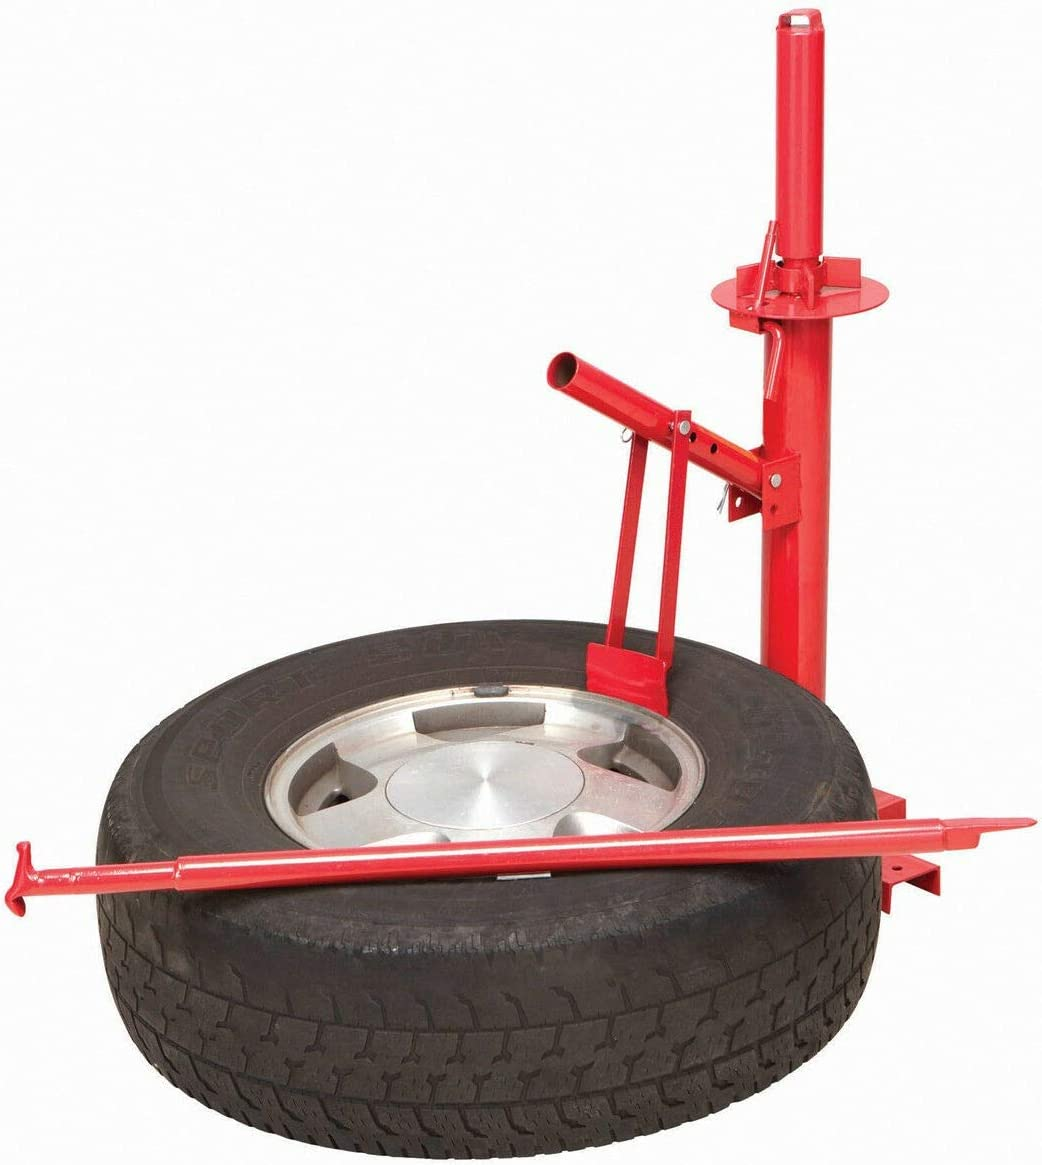 Manual Portable Hand Tire Changer Bead Breaker Tool Mounting Home Shop Auto DIY